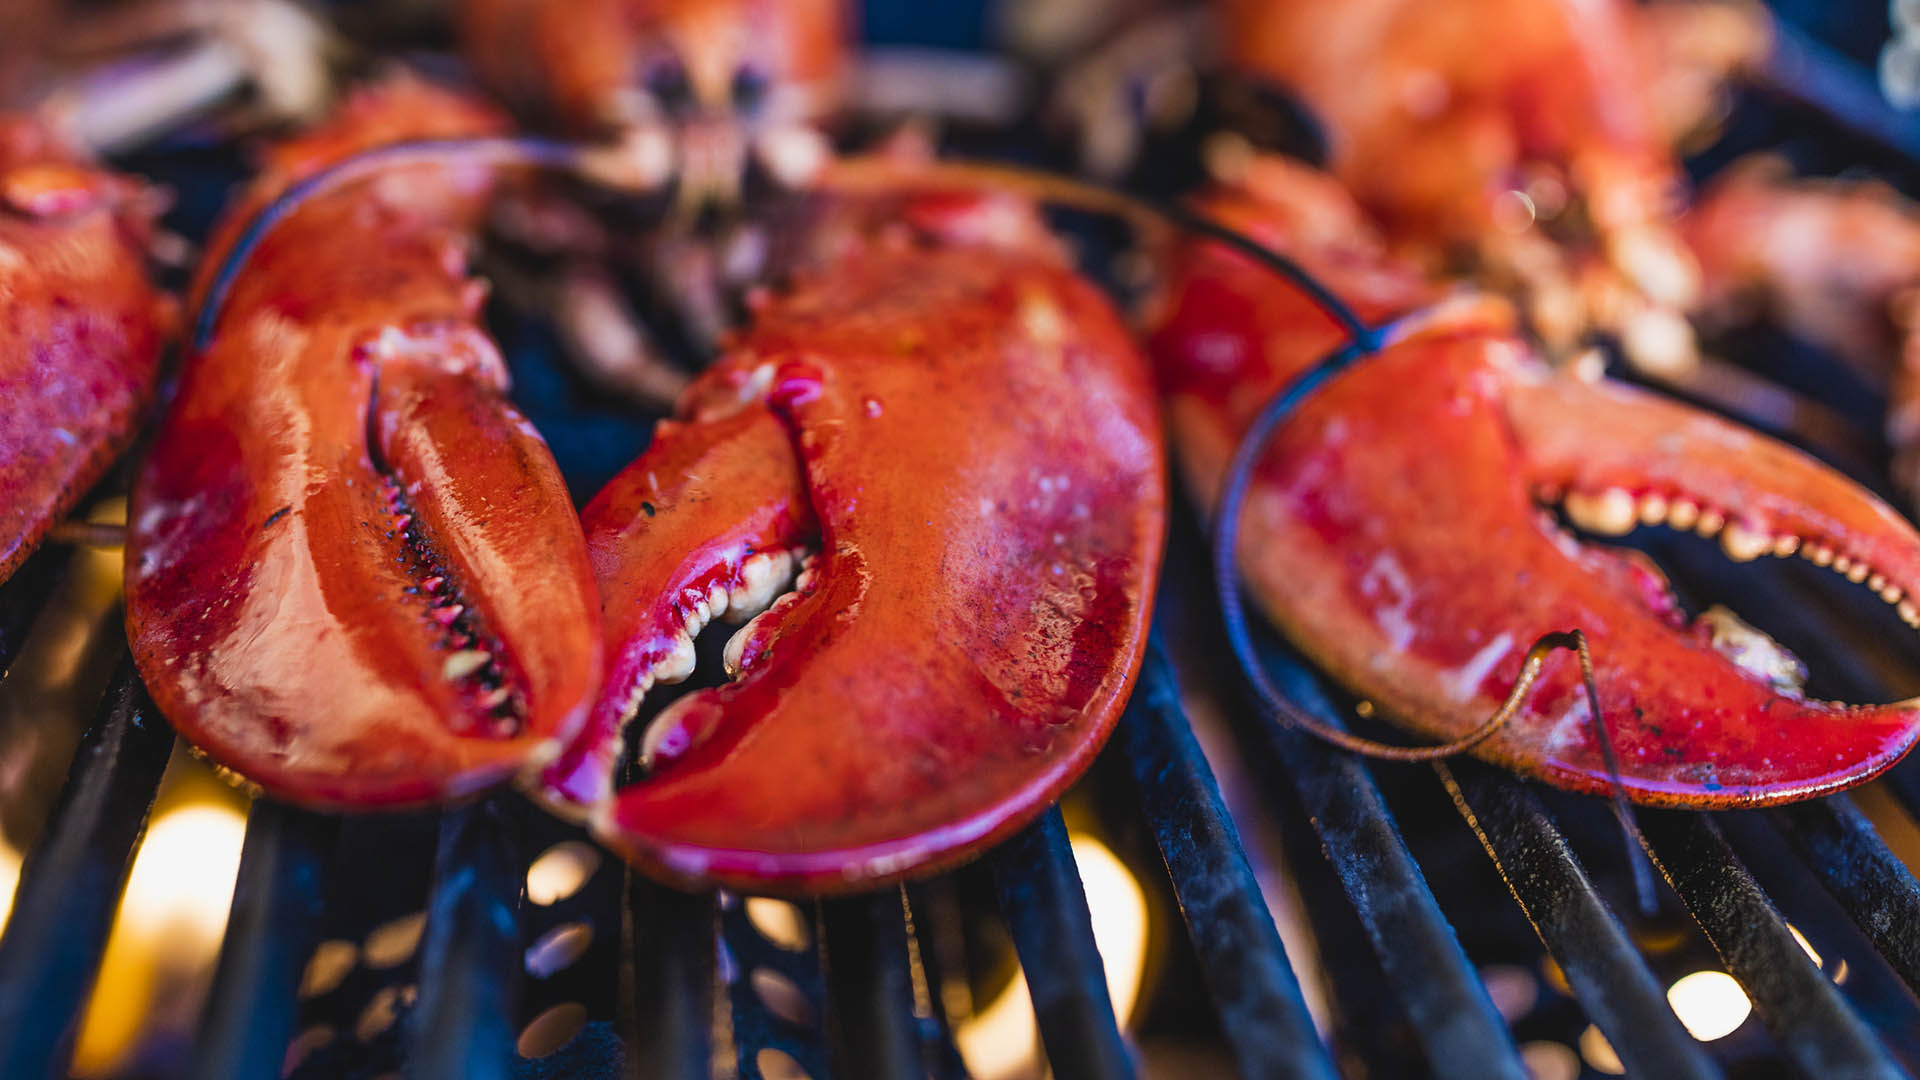 Close-up of Canadian lobsters grilling on the barbecue